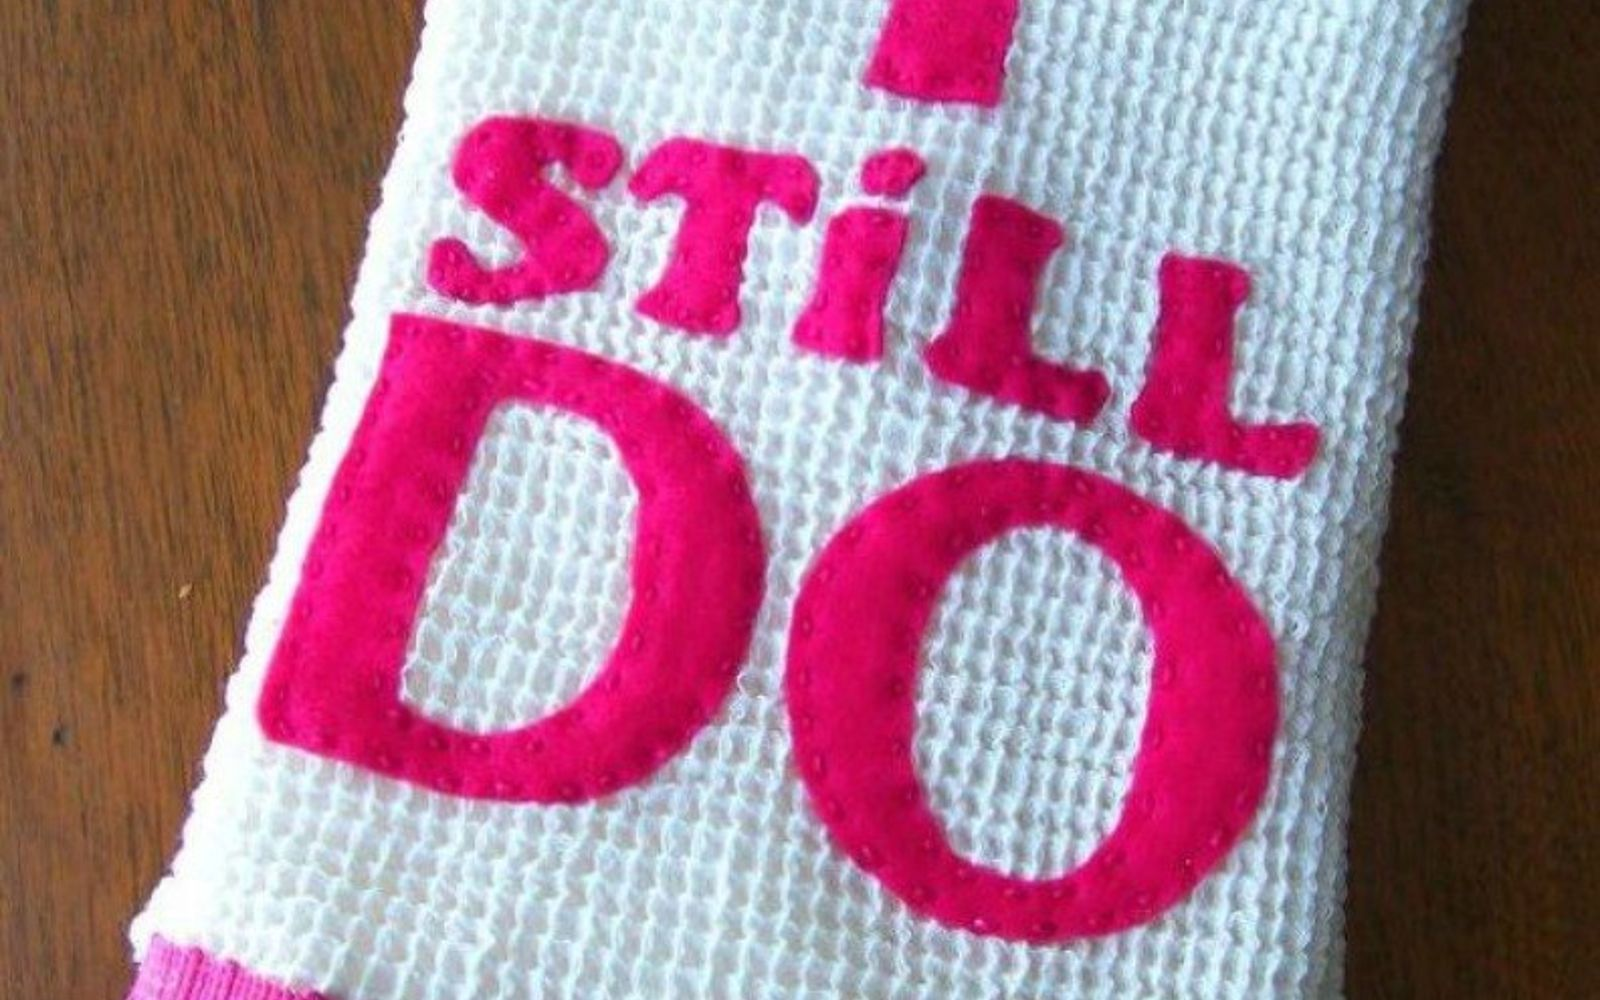 s 20 heartfelt valentine s day gifts for under 20, seasonal holiday decor, valentines day ideas, Decorate a dish towel with a message